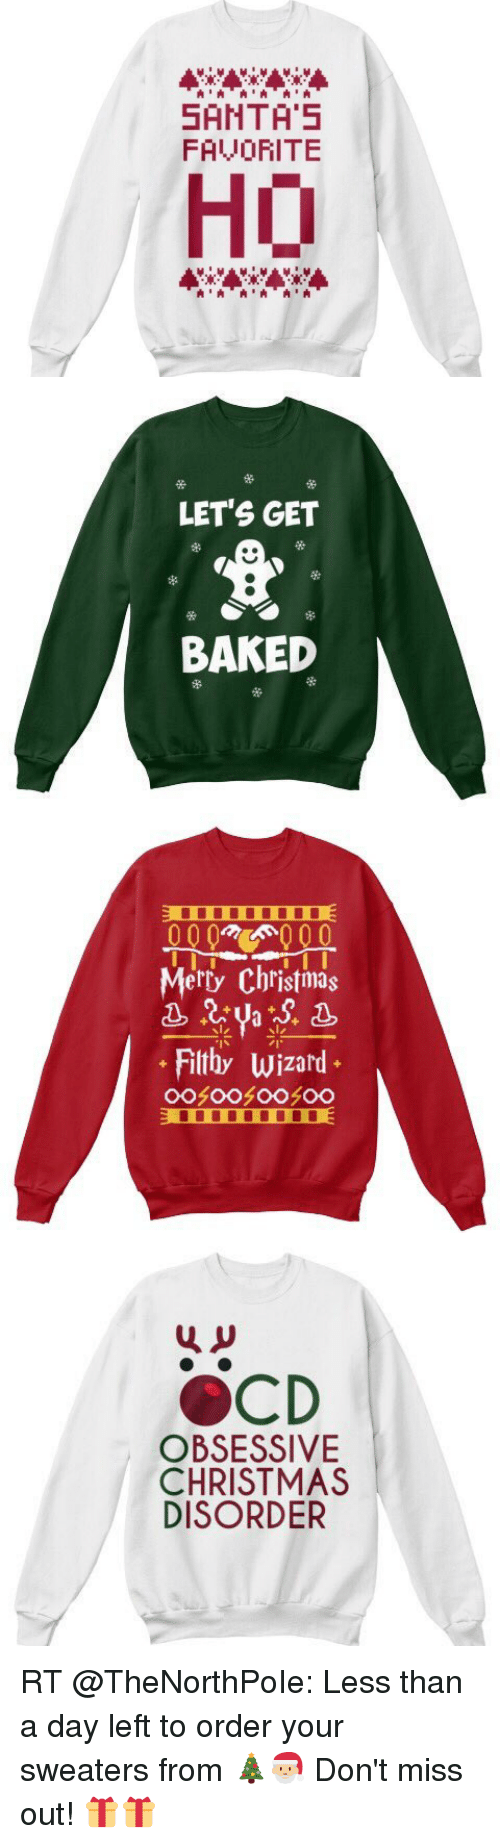 A a a a SANTA 5 FAVORITE Ho LET\'S GET BAKED Merry Christmas Filthy ...